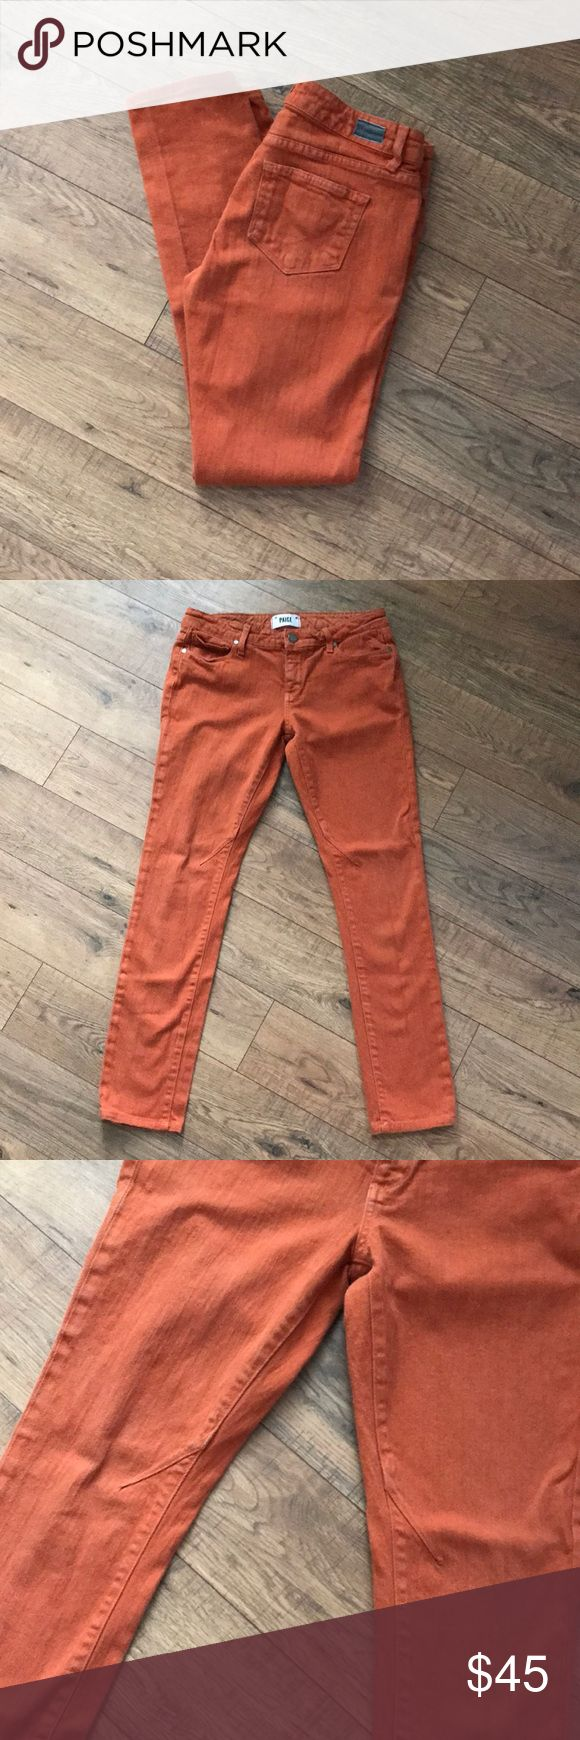 """Paige Troy Boy Jeans Paige Troy Boy jeans in a burnt orange color that is perfect for fall. Size 26 with a 28.5"""" inseam. Pair with a neutral top for a simple, chic outfit. Mid rise, Skinny slouchy with darting at knee. PAIGE Jeans Boyfriend"""